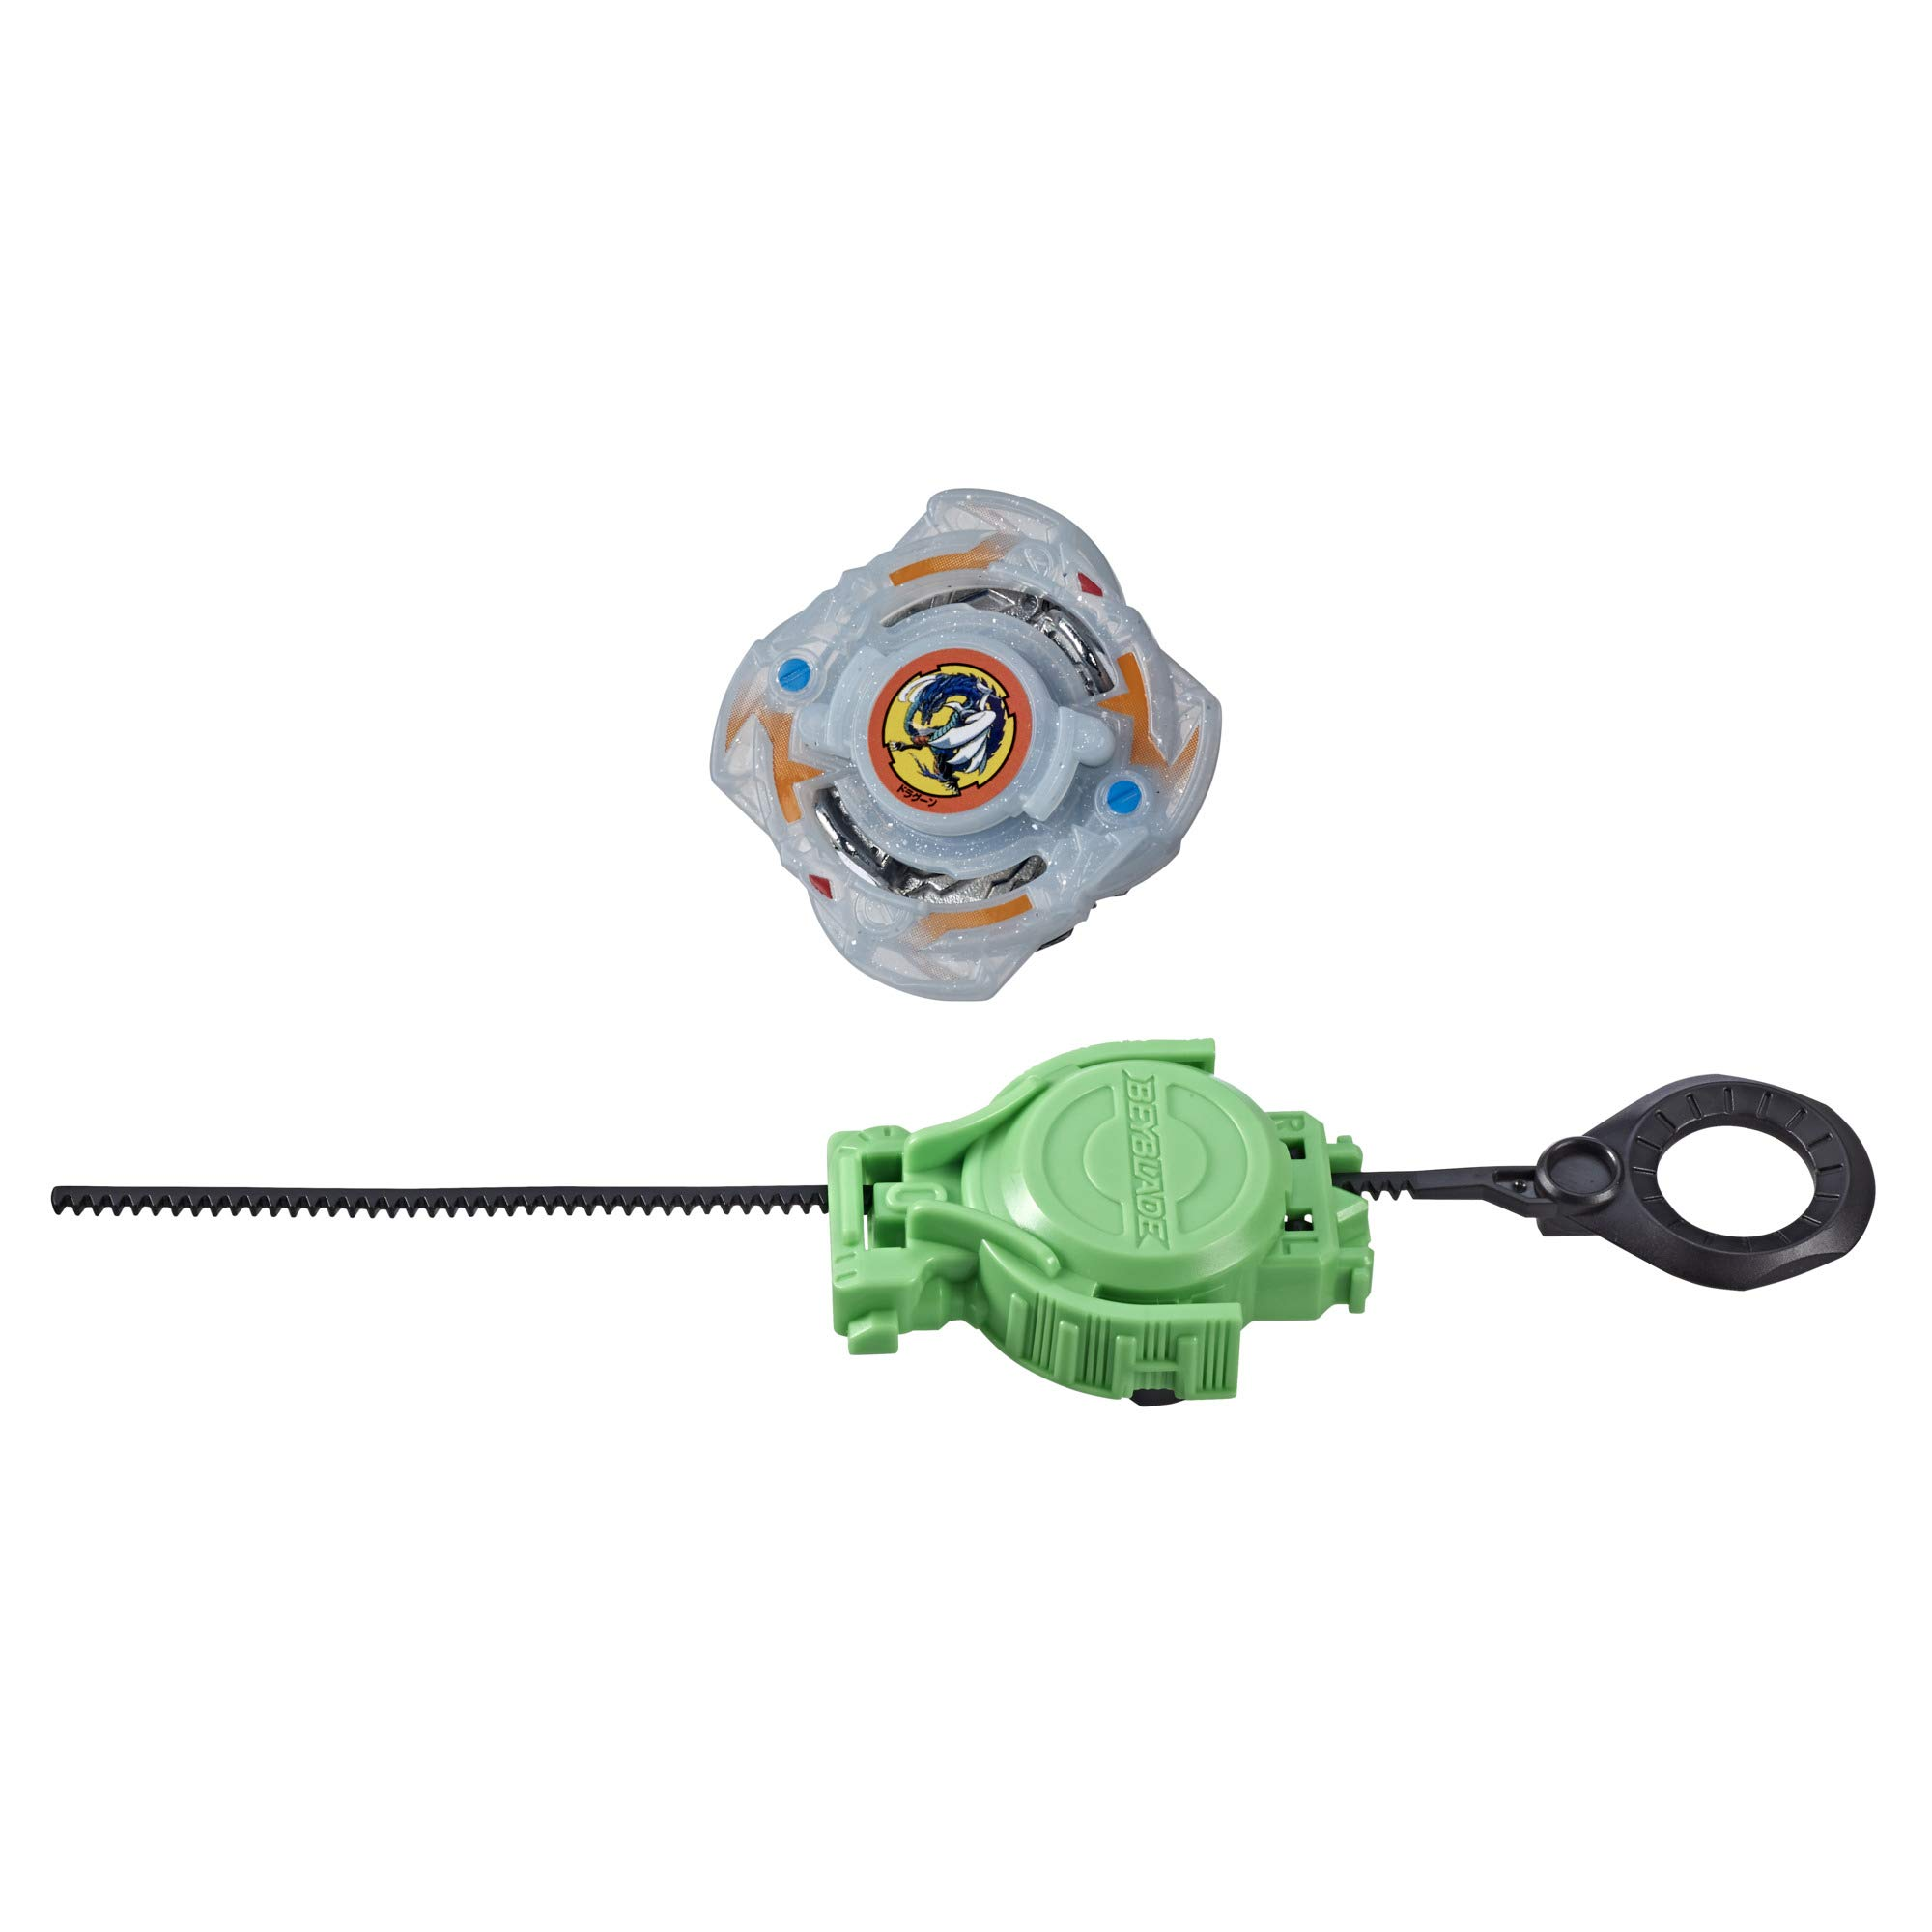 BEYBLADE Burst Rise Slingshock Fang Dragoon F Starter Pack -- Left-Spin Battling Top Toy and Right/Left-Spin Launcher, Ages 8 and Up